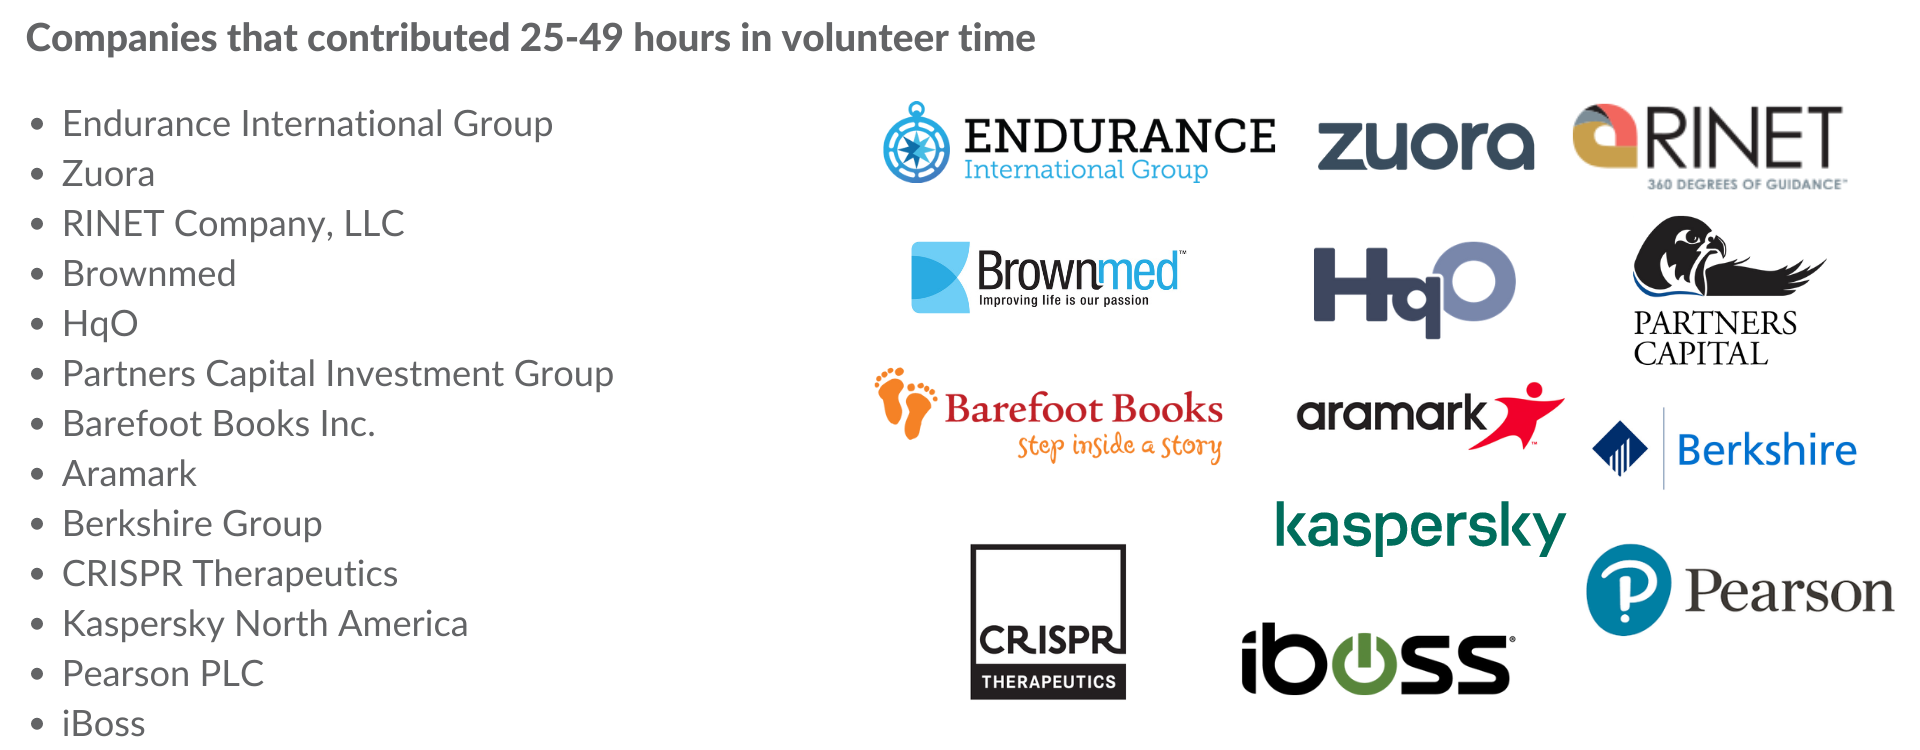 Companies that contributed 25-49 hours in volunteer time: Endurance International Group, Zuora, RINET Company, LLC, Brownmed, HqO, Partner Capital Investment Group, Barefoot Books Inc., Aramark, Berkshire Group, CRISPR Therapeutics, Kaspersky North America, Pearson PLC, iBoss